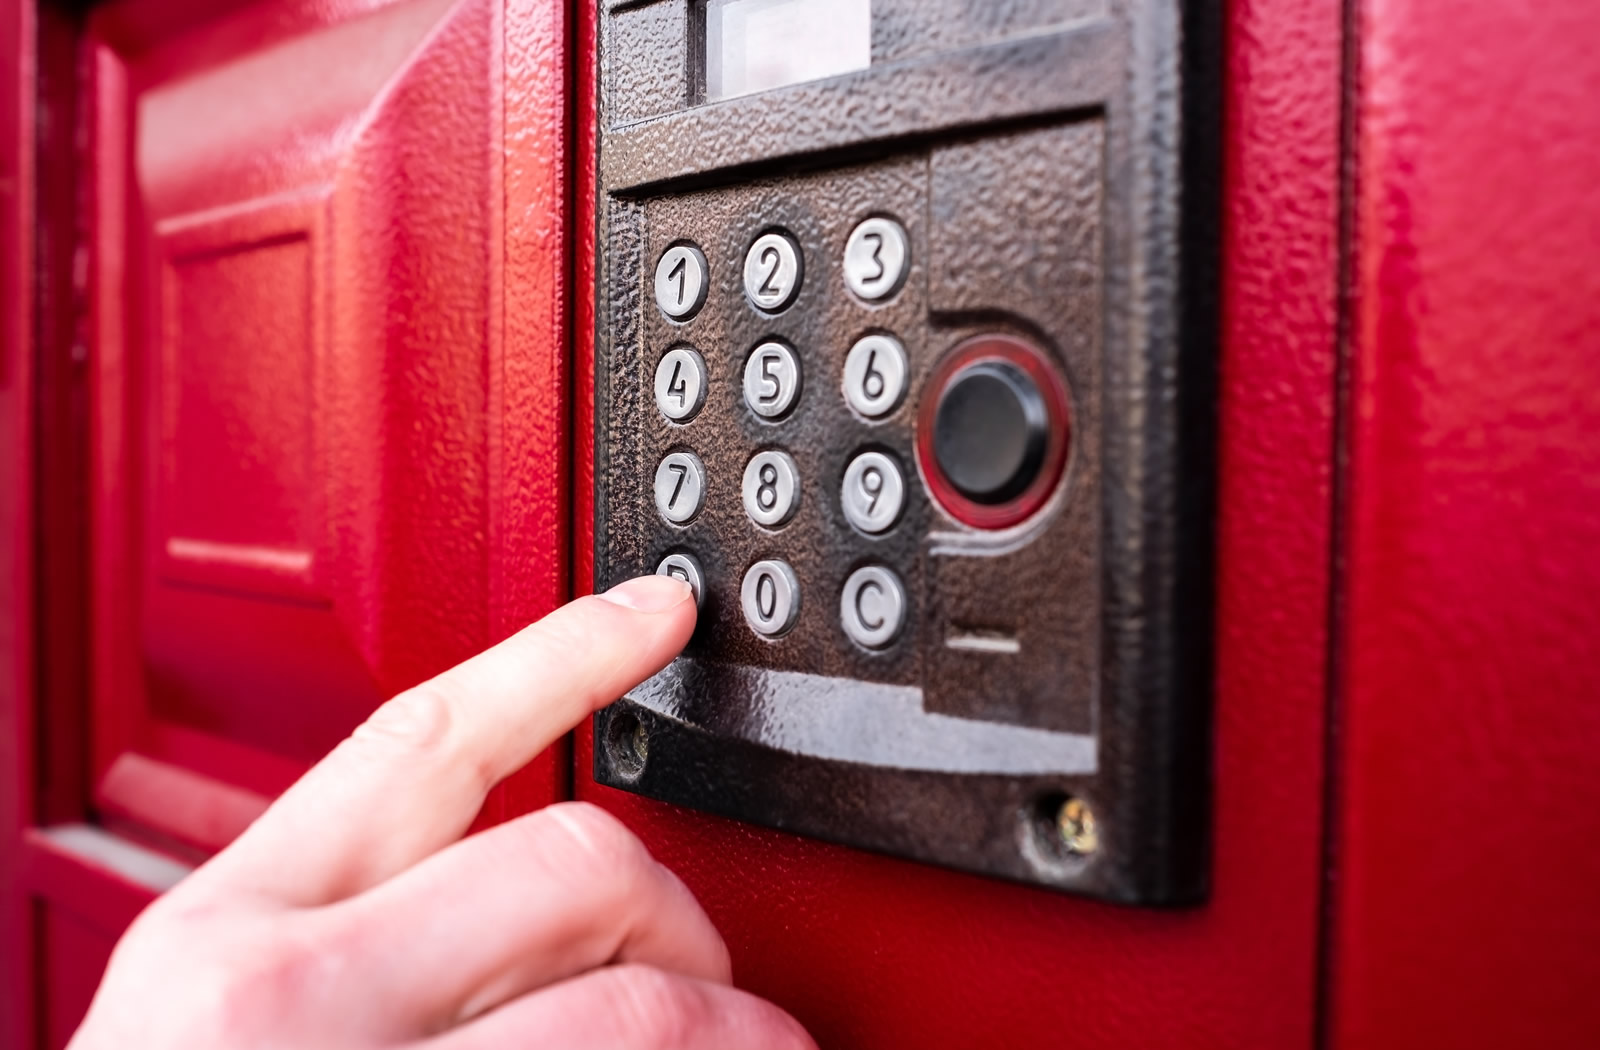 Greenwich Locksmiths is fully equipped to service and install your intercom system anywhere in NYC